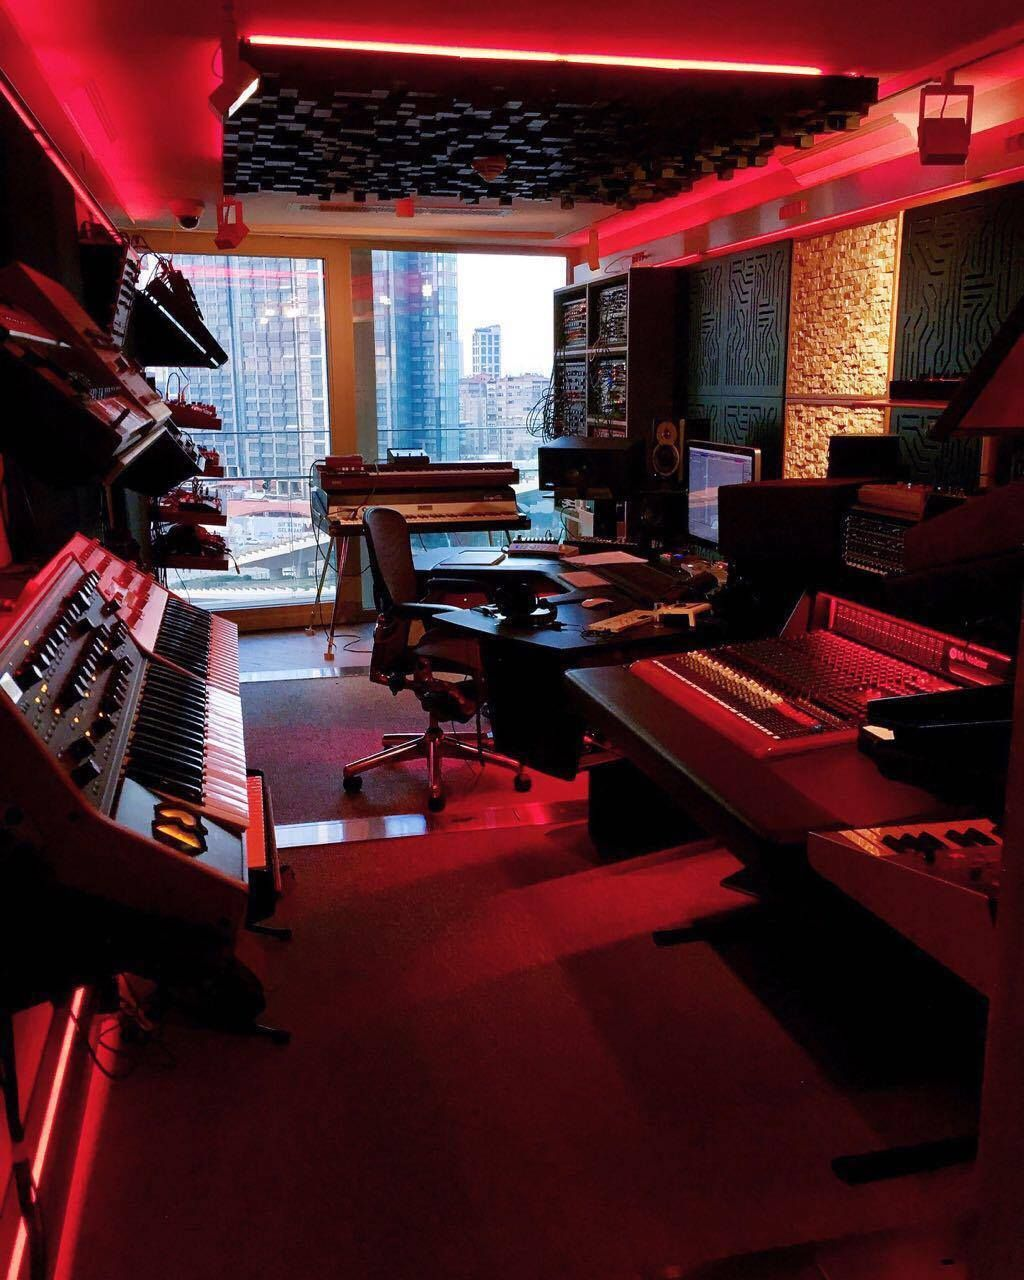 Home music studio design-ideen trevor faw fawtrevor on pinterest